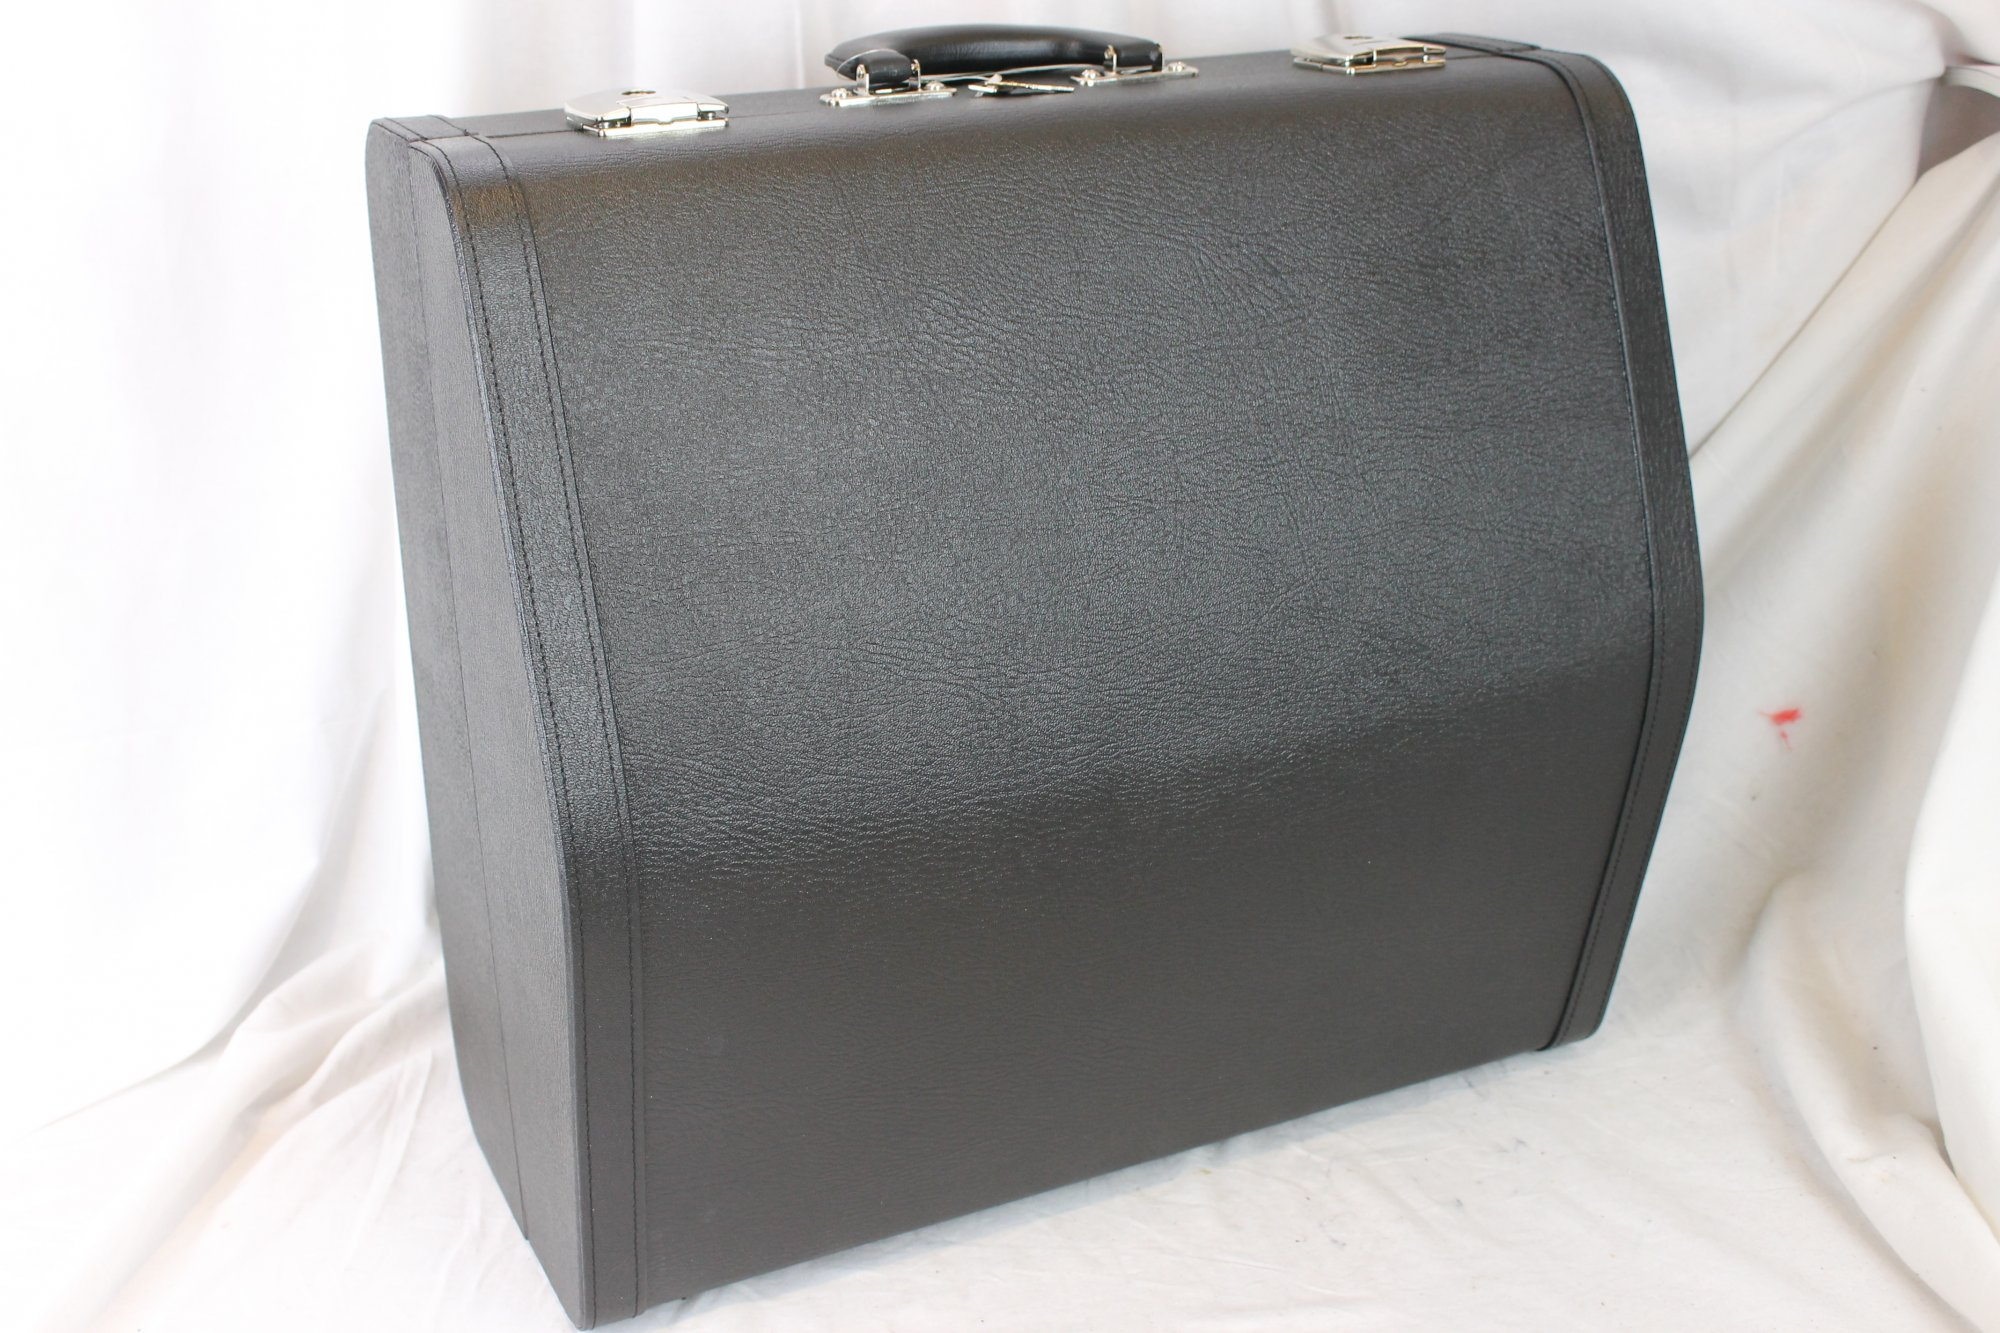 NEW Black German Accordion Hard Case 16.5 x 16 x 9 (42cm x 40cm x 23cm)